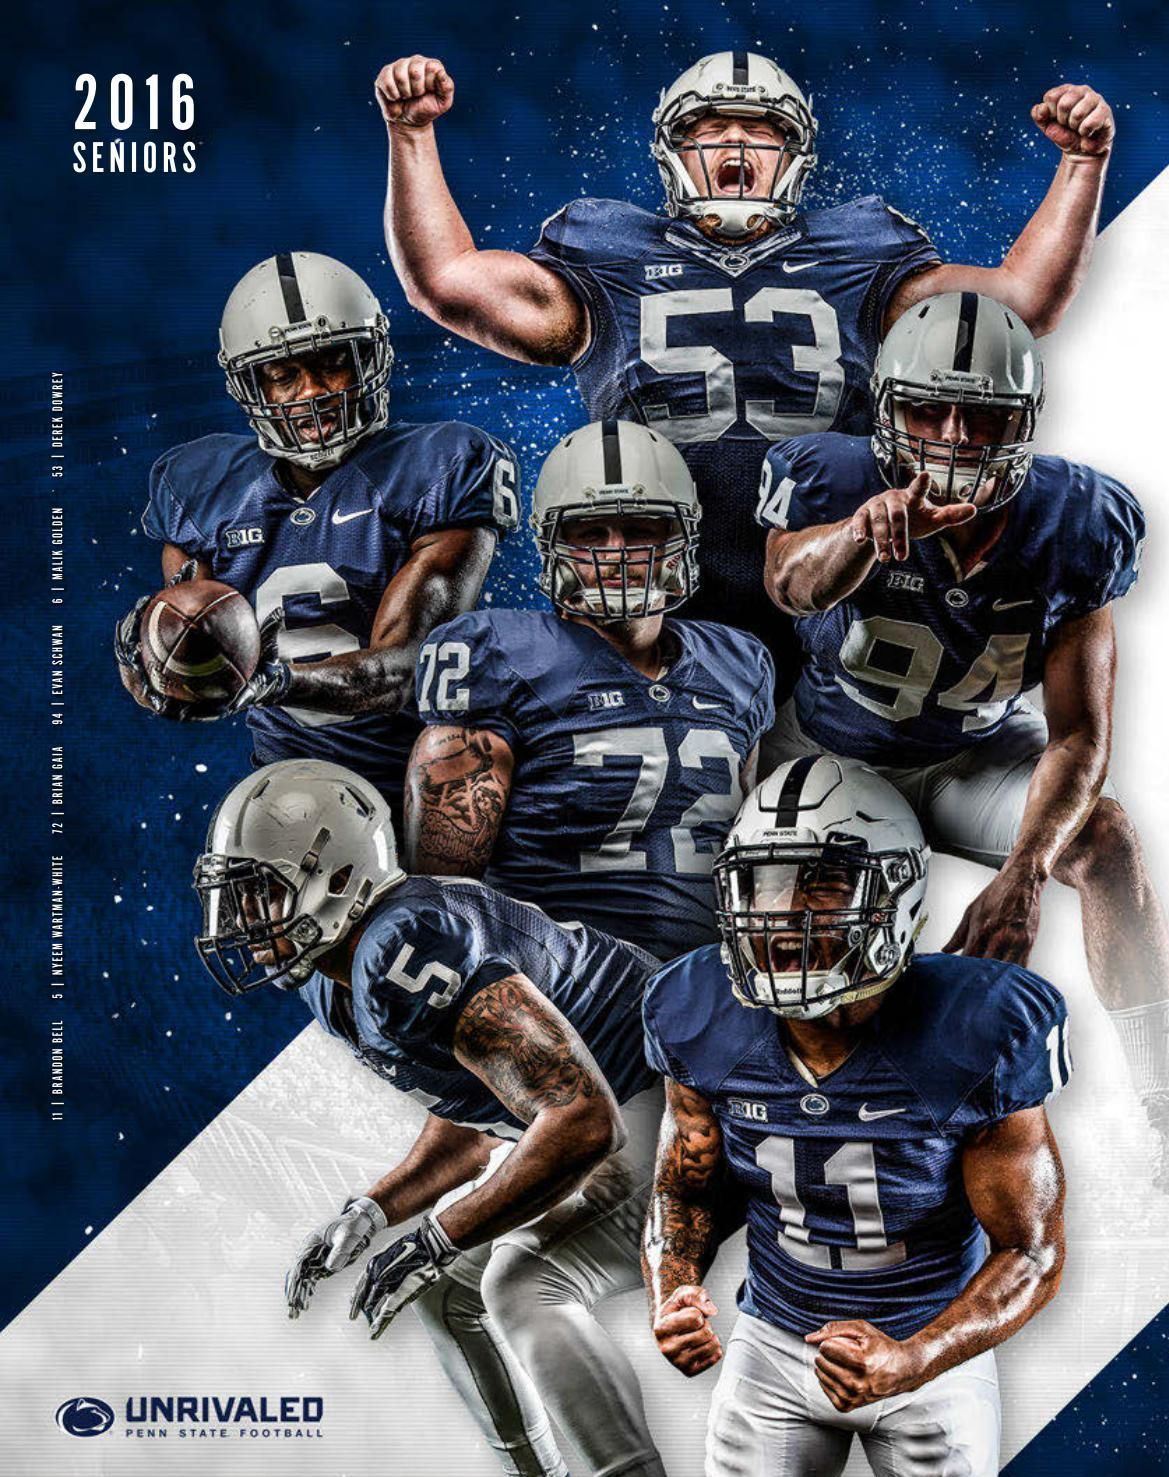 2016 penn state football yearbook yearbooks and layouts clippedonissuu from 2016 penn state football yearbook 1betcityfo Choice Image